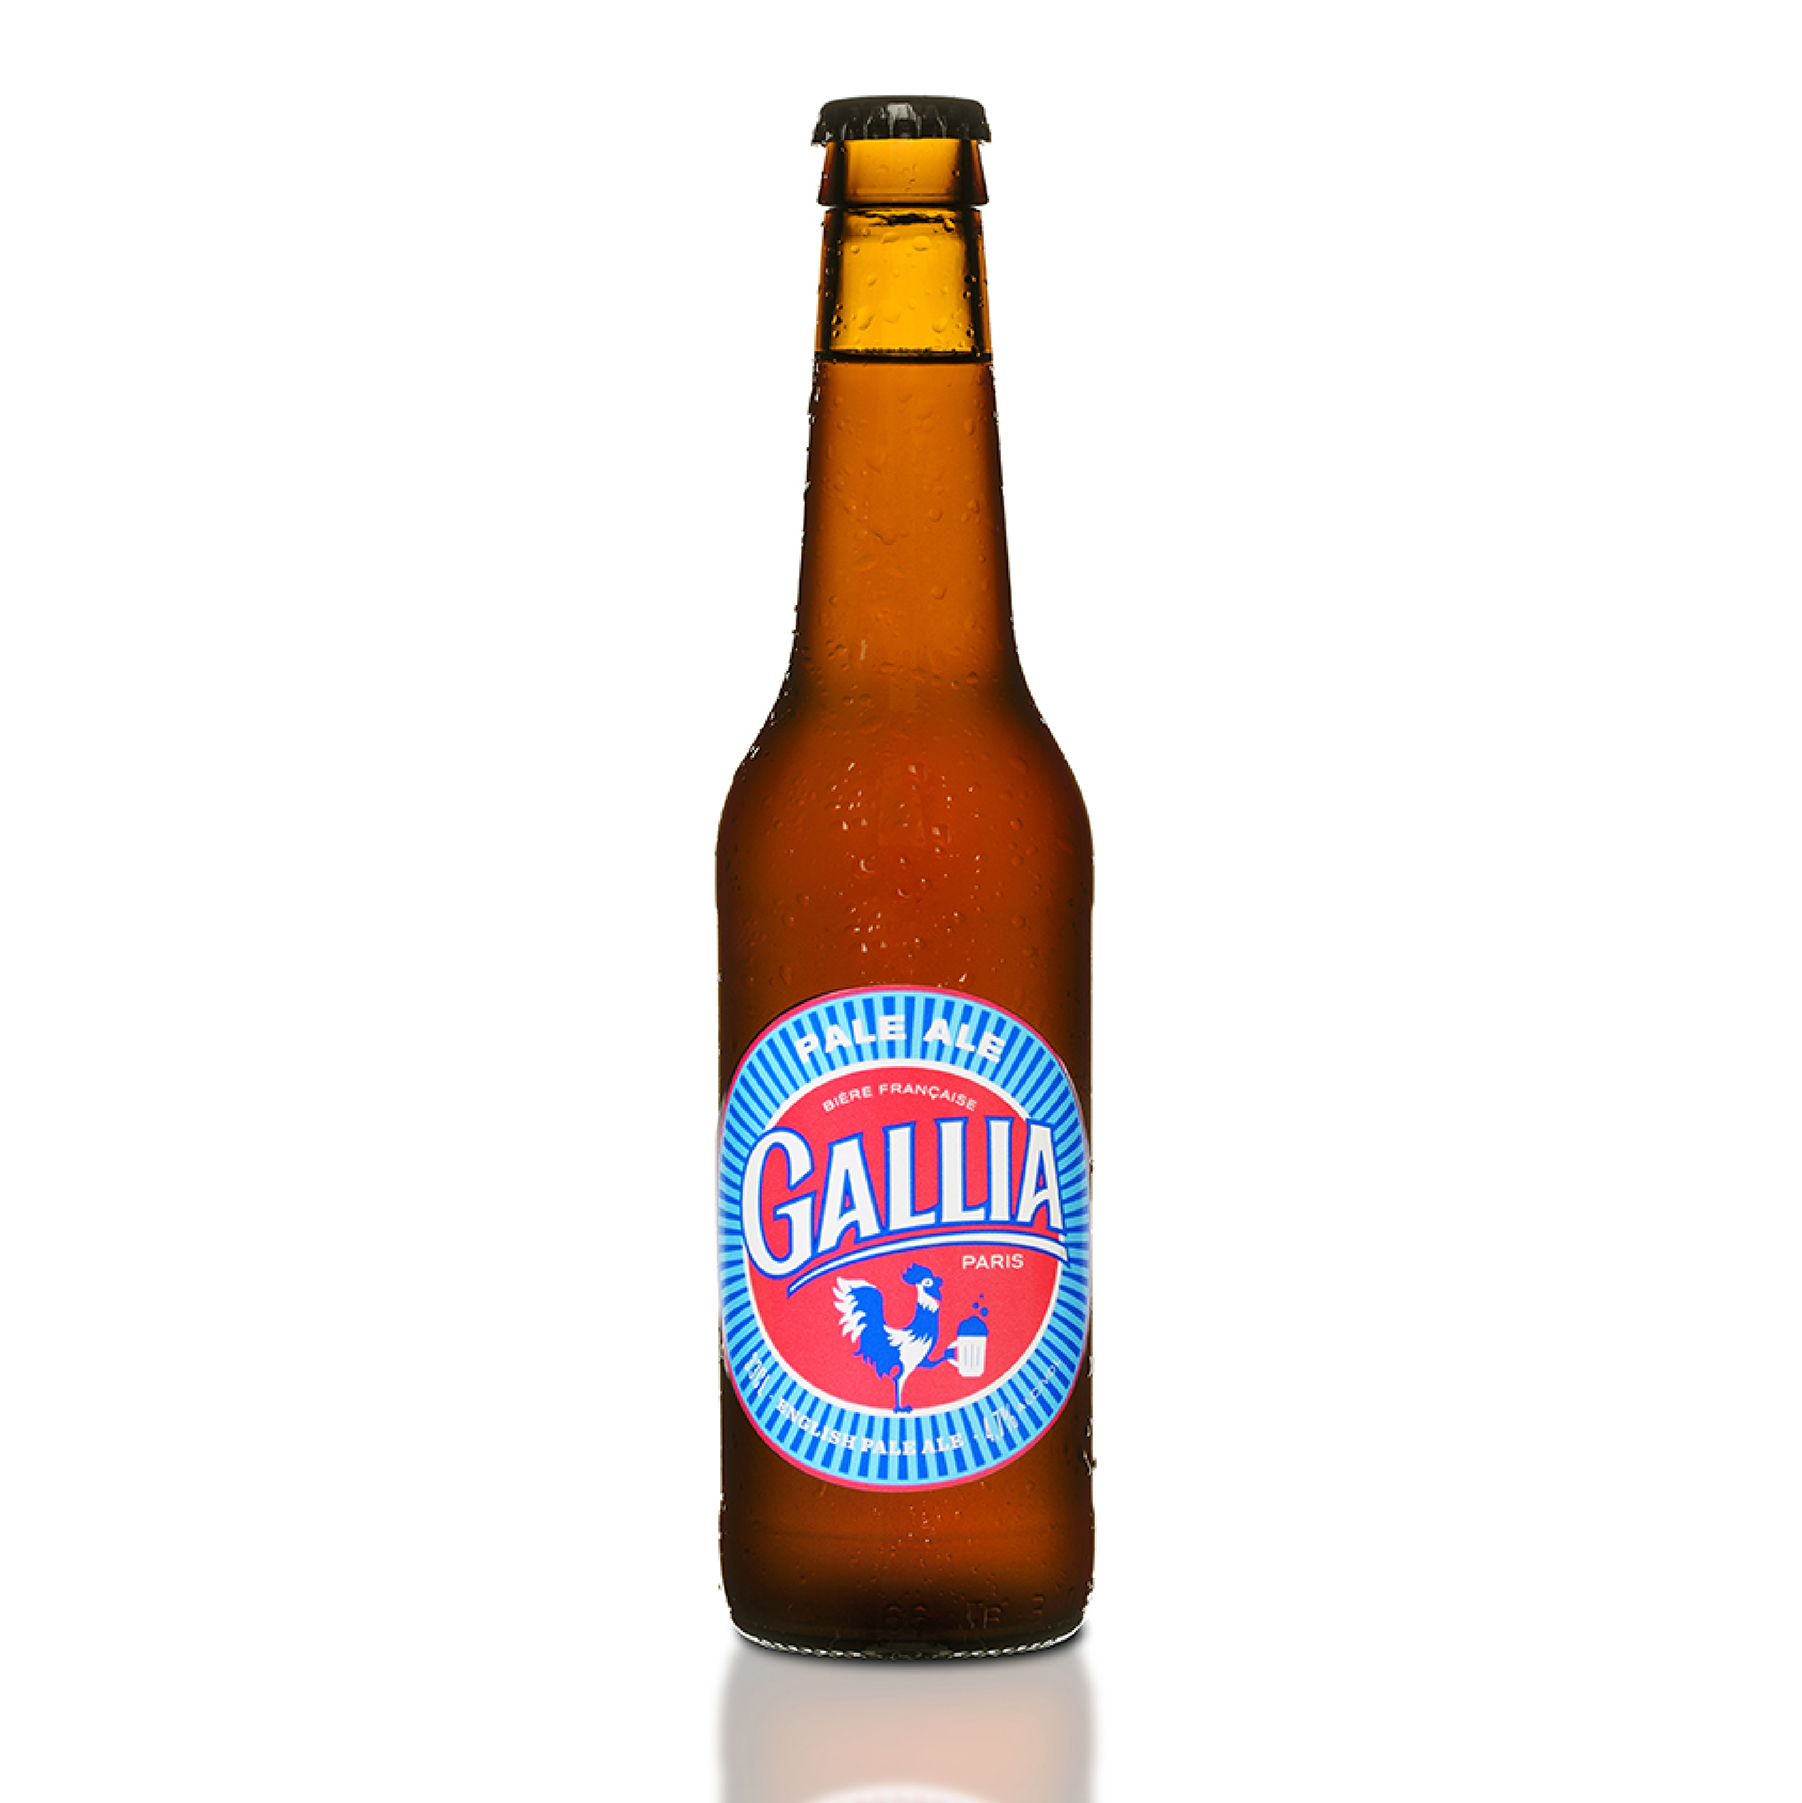 Gallia Pale Ale